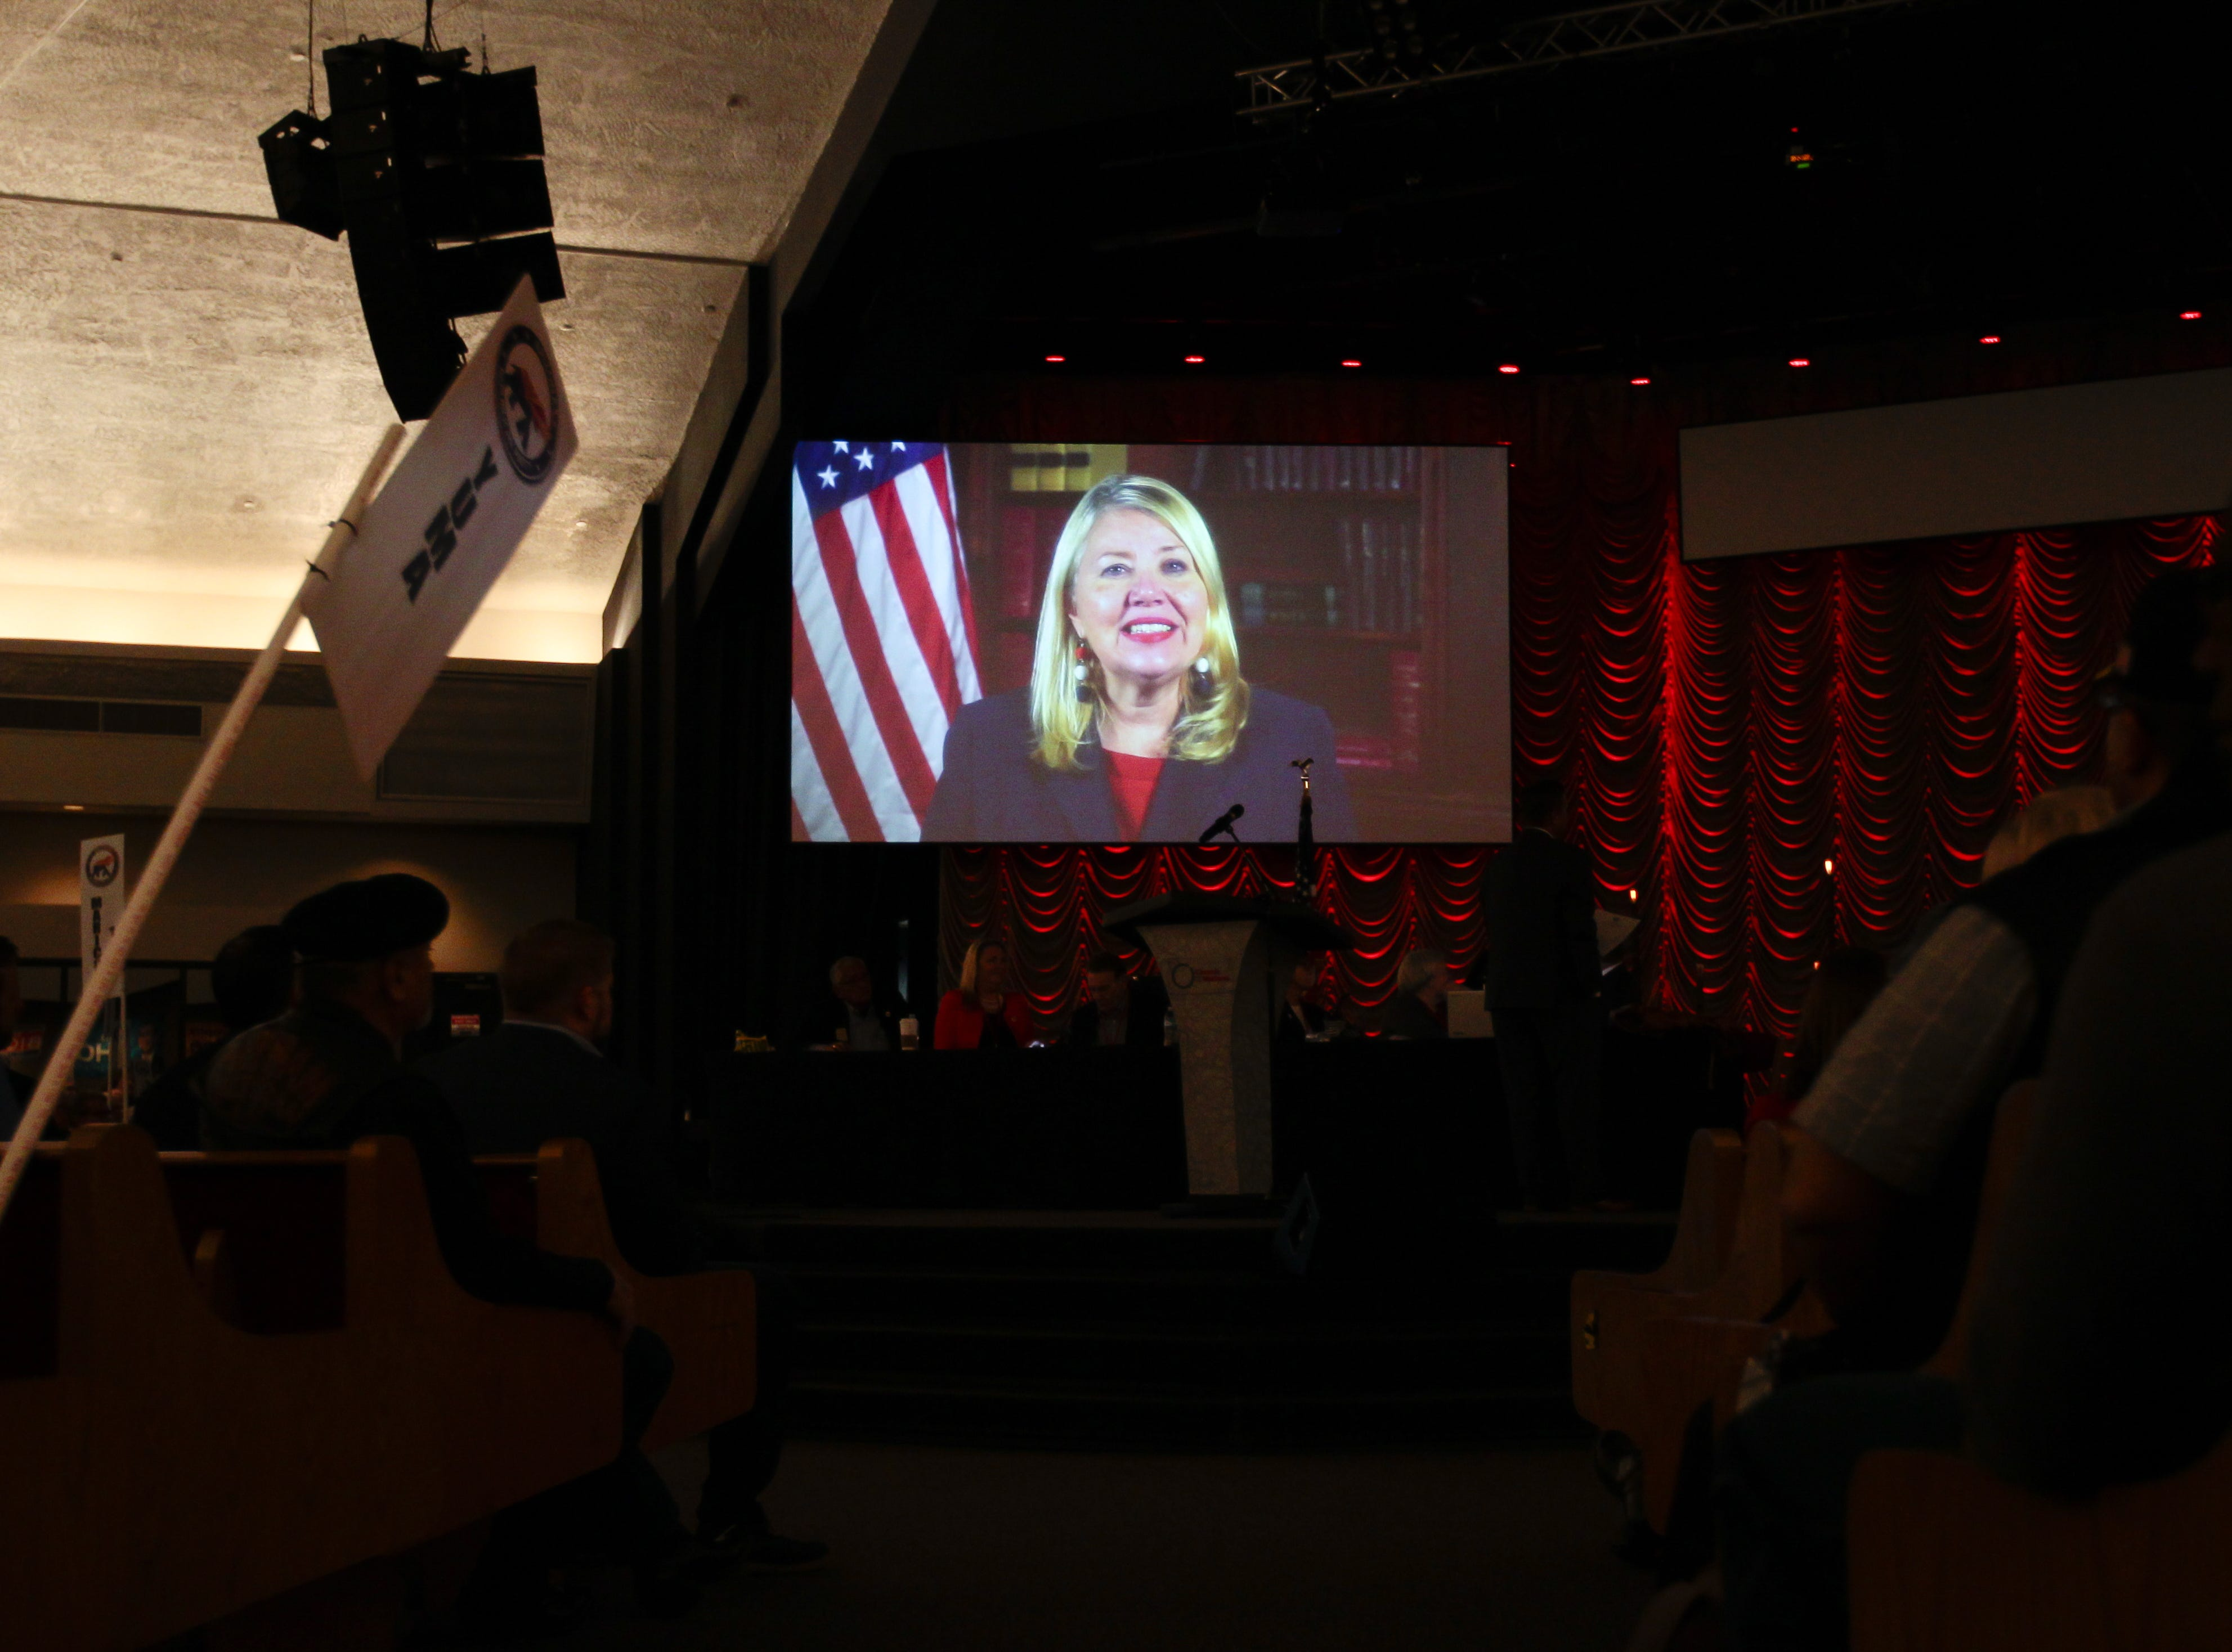 Rep. Debbie Lesko delivers a message from Washington during the Statutory Meeting of the State Committee of the Arizona Republican Party at Church for the Nations on Saturday, Jan. 26, 2019.